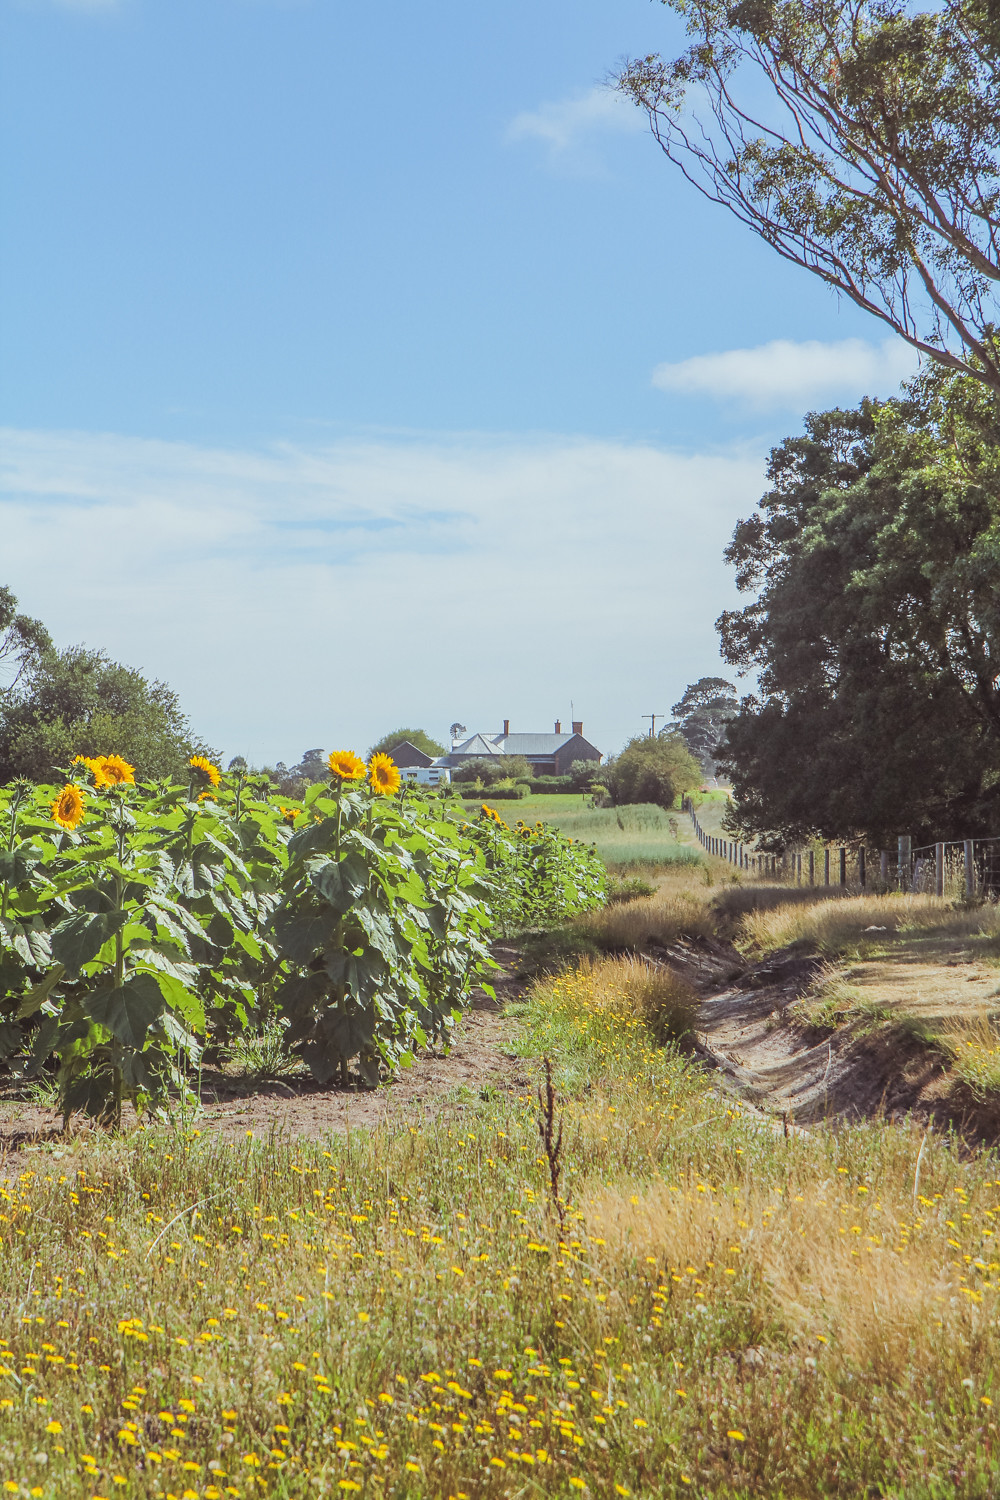 Sunflower Farm at dunnstown in Victoria